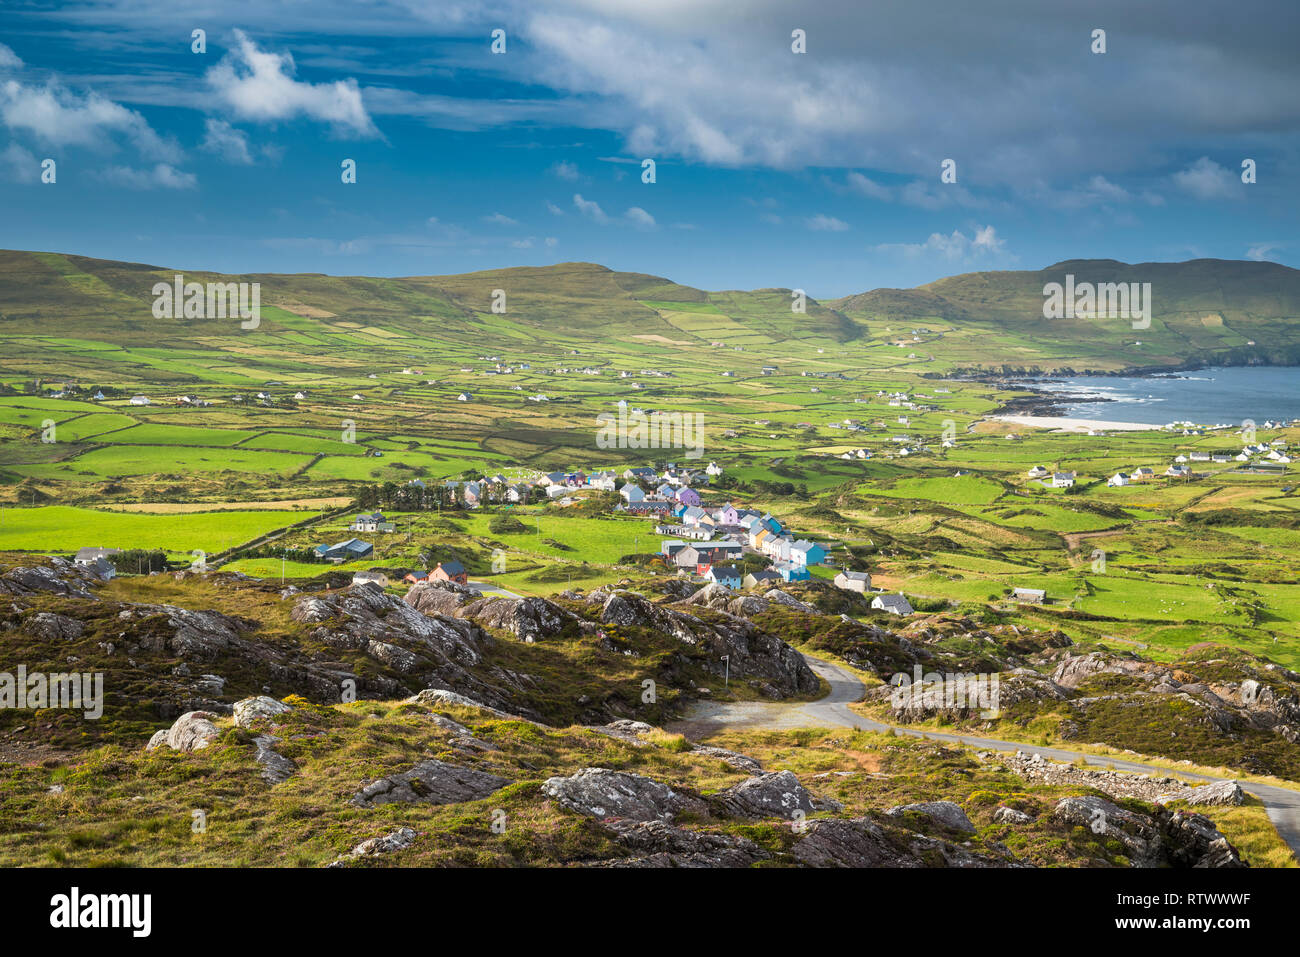 View from the Beara Way walking path above the village of Allihies, Beara, County Cork, Ireland - Stock Image